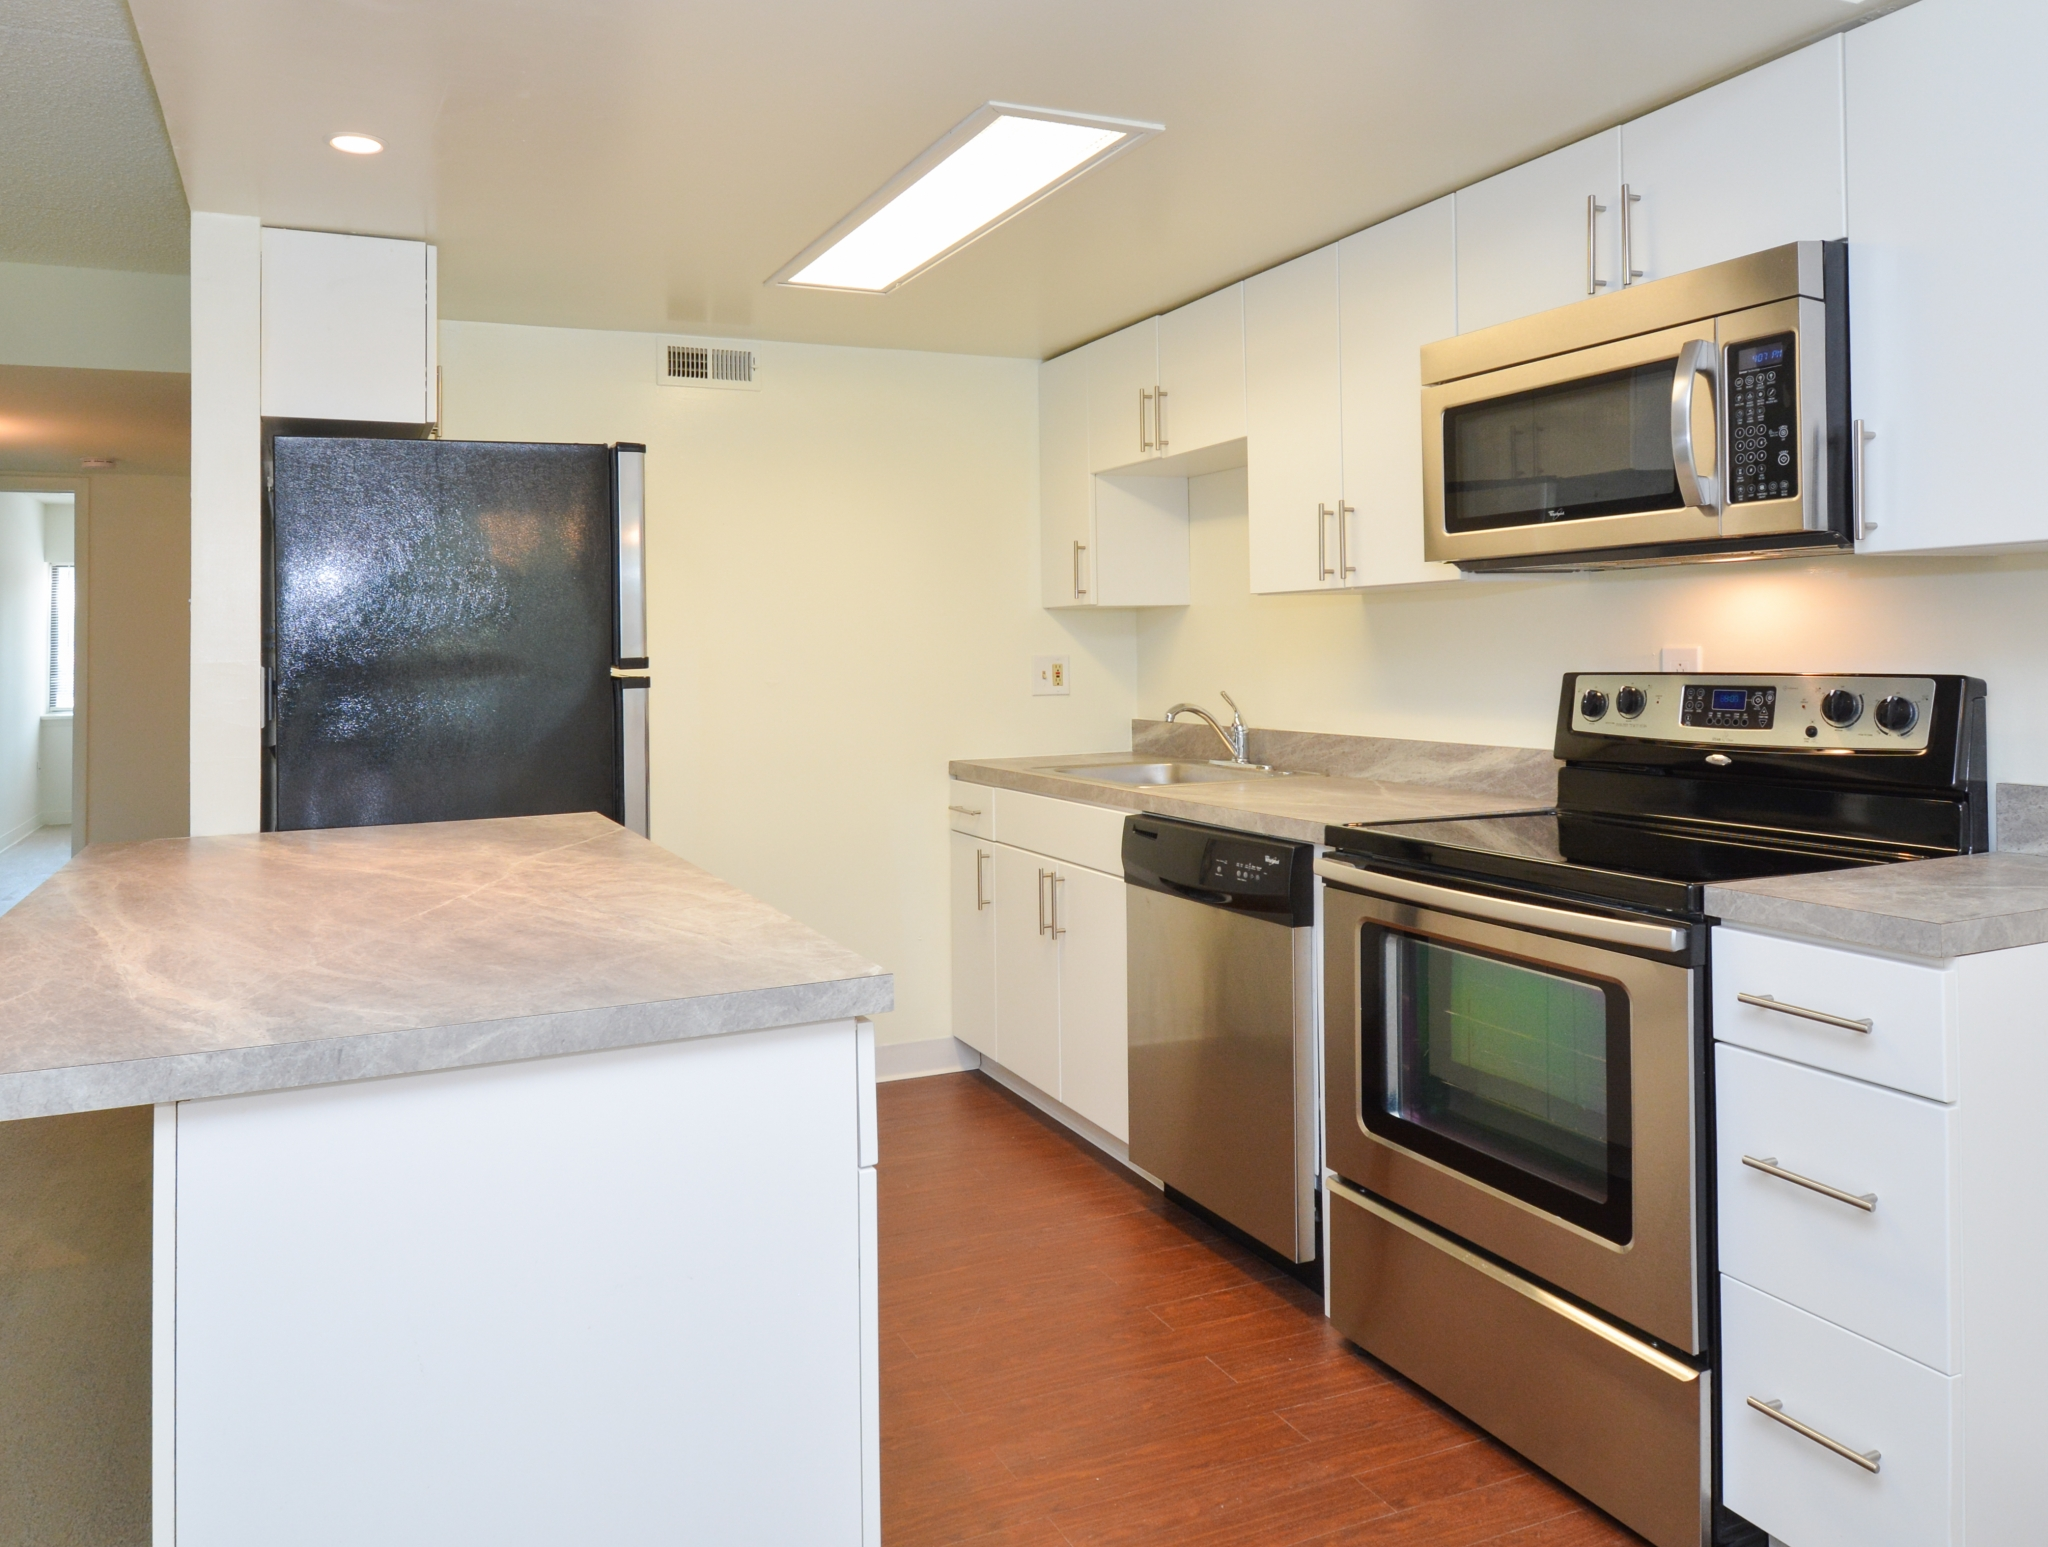 Princeton Orchards Sample Kitchen with Stainless Steel Appliances | Apartments for Rent in South Brunswick, NJ